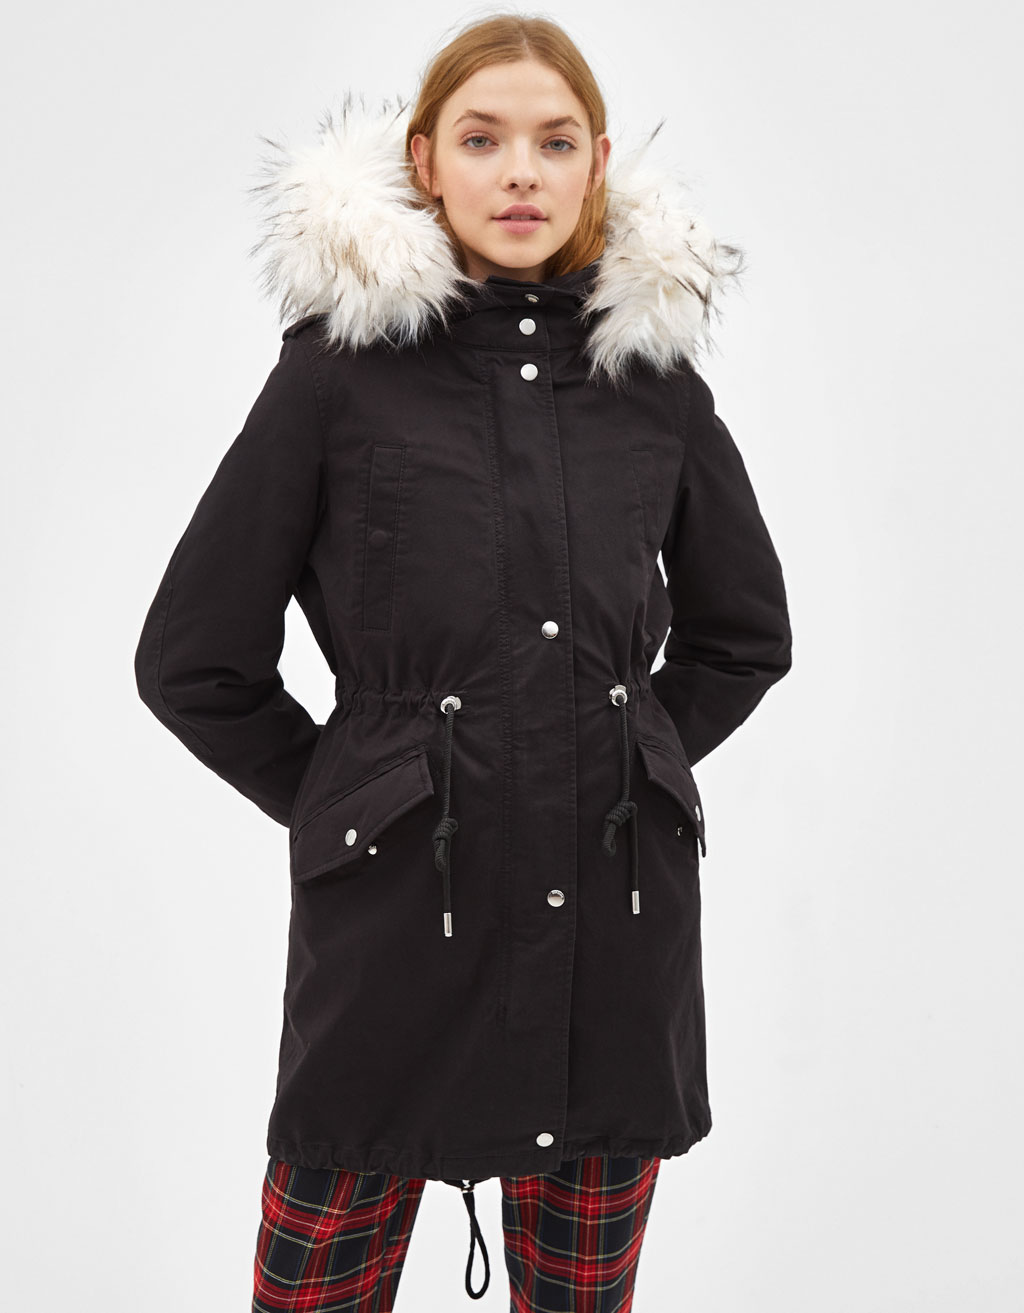 Parka-style coat with removable lining